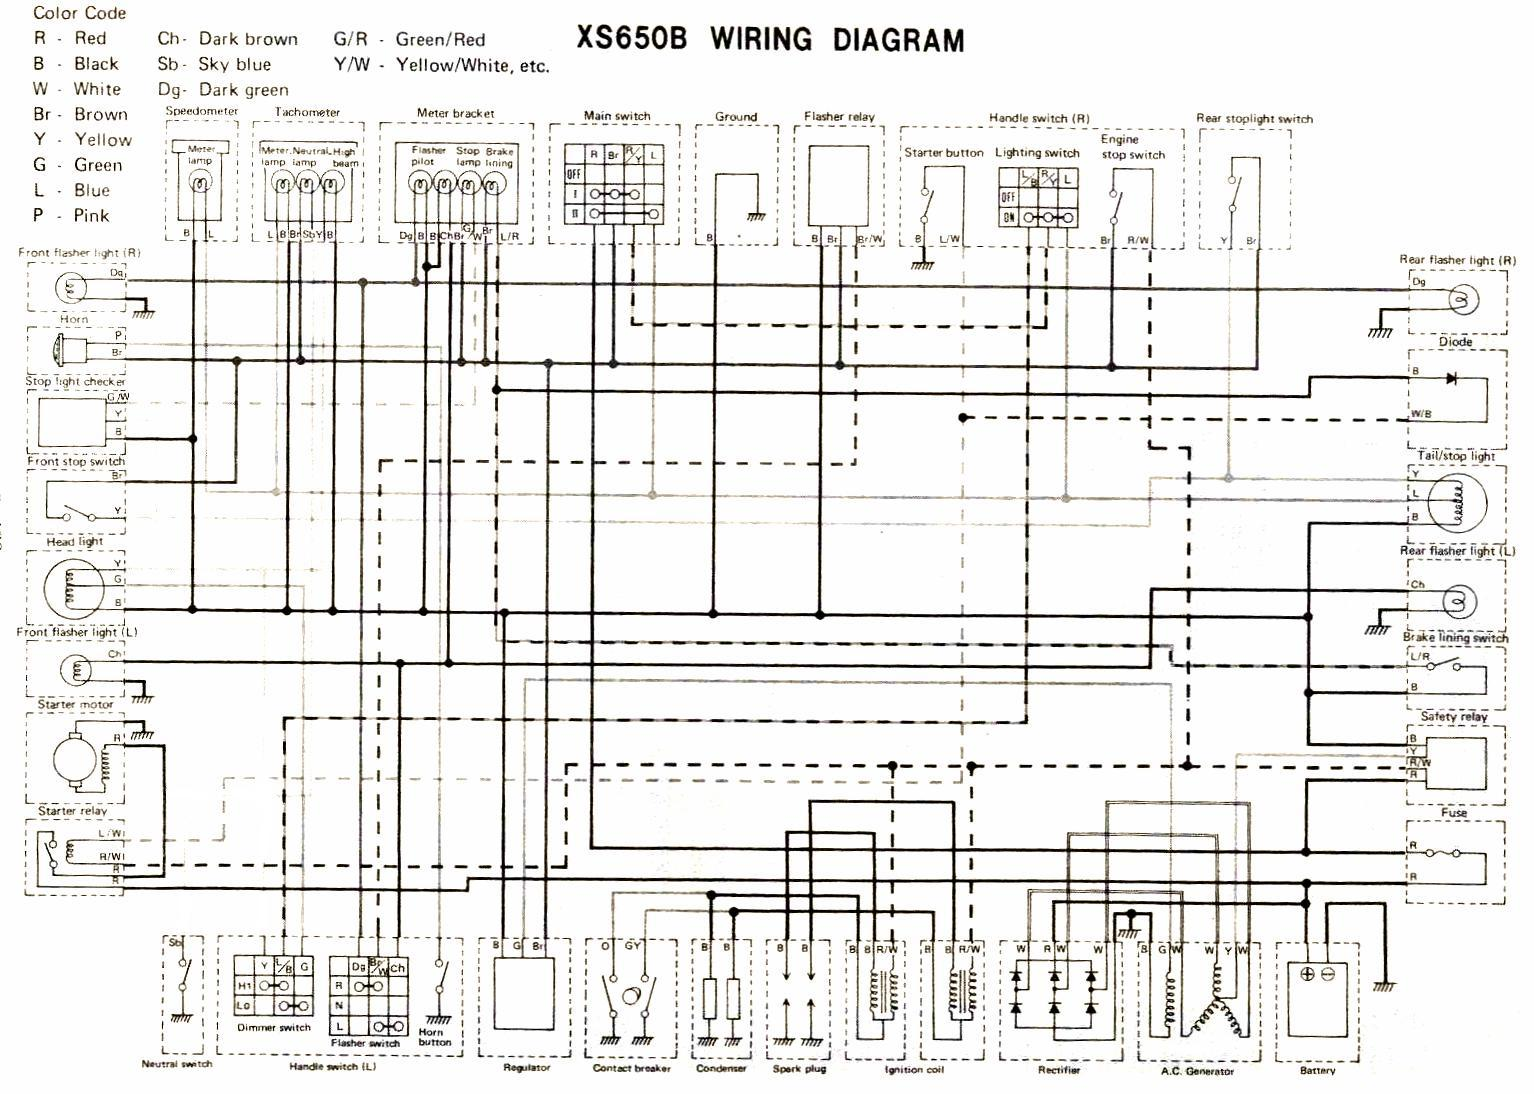 wiring diagrams rh oregonmotorcycleparts com DRZ 400 Wiring Diagram Nissan Wiring Diagrams Automotive